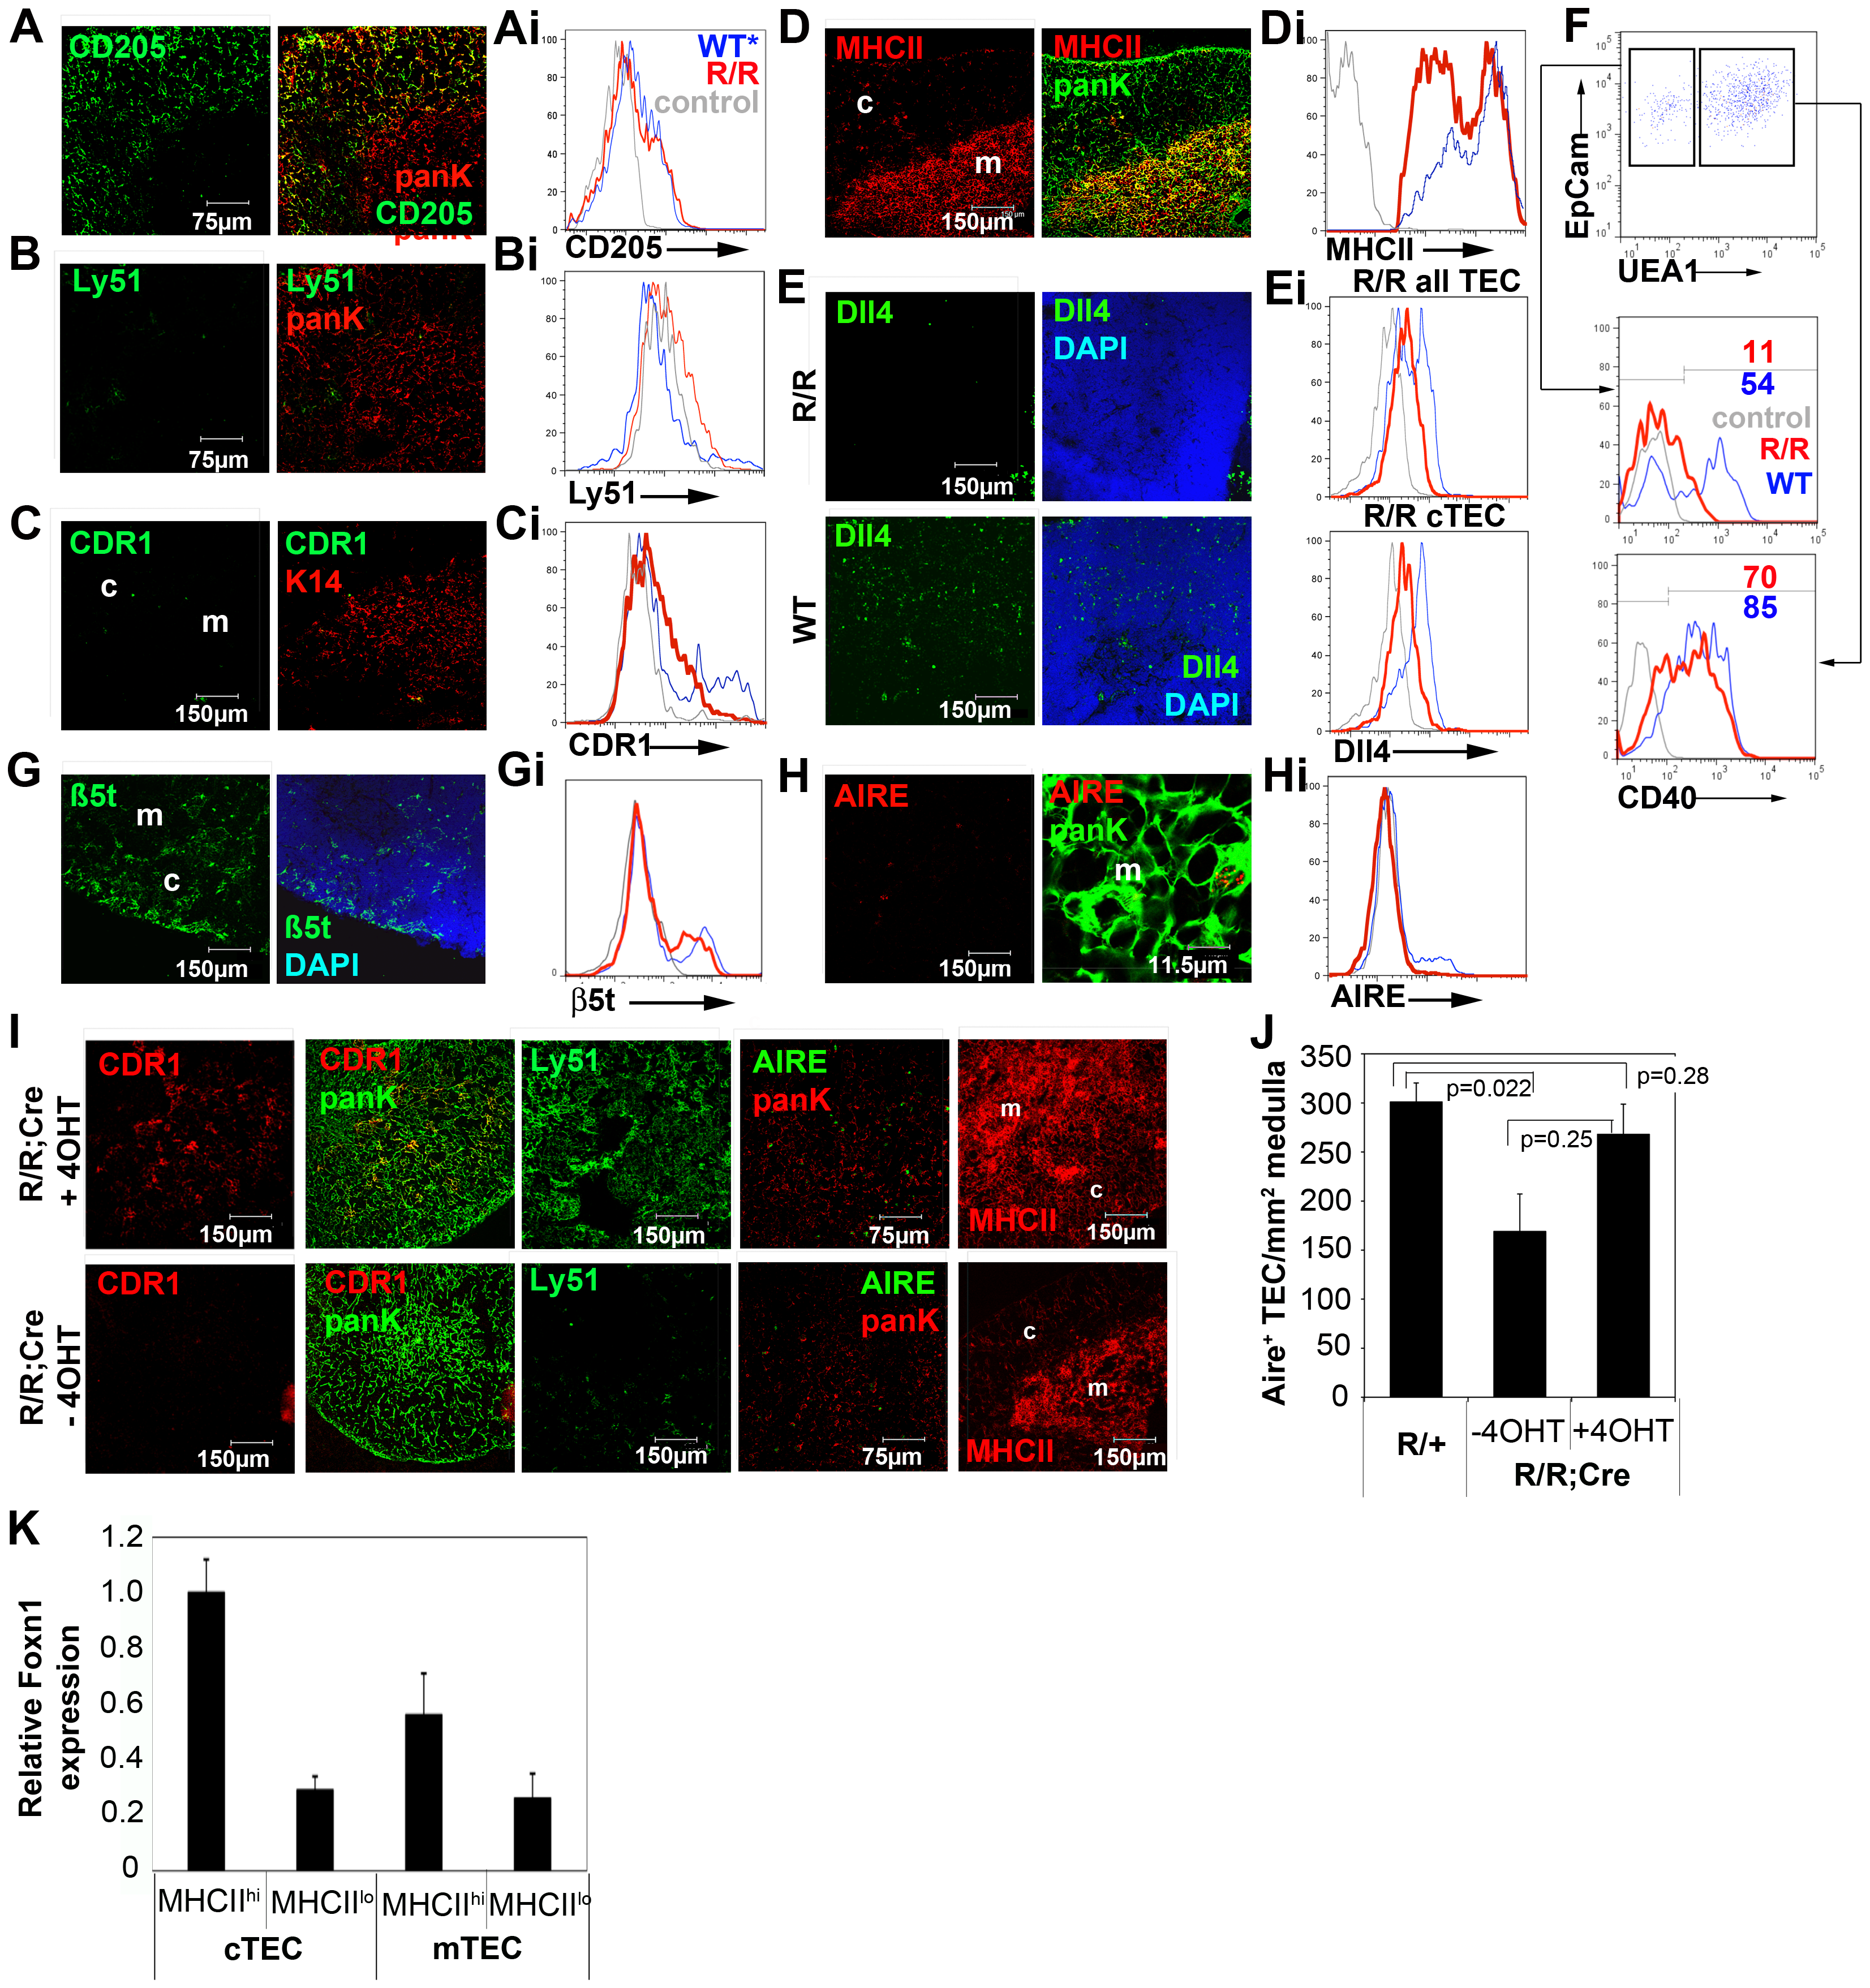 Reduced Foxn1 expression results in impaired development of both medullary and cortical TEC in postnatal <i>Foxn1<sup>R/R</sup></i> thymi.